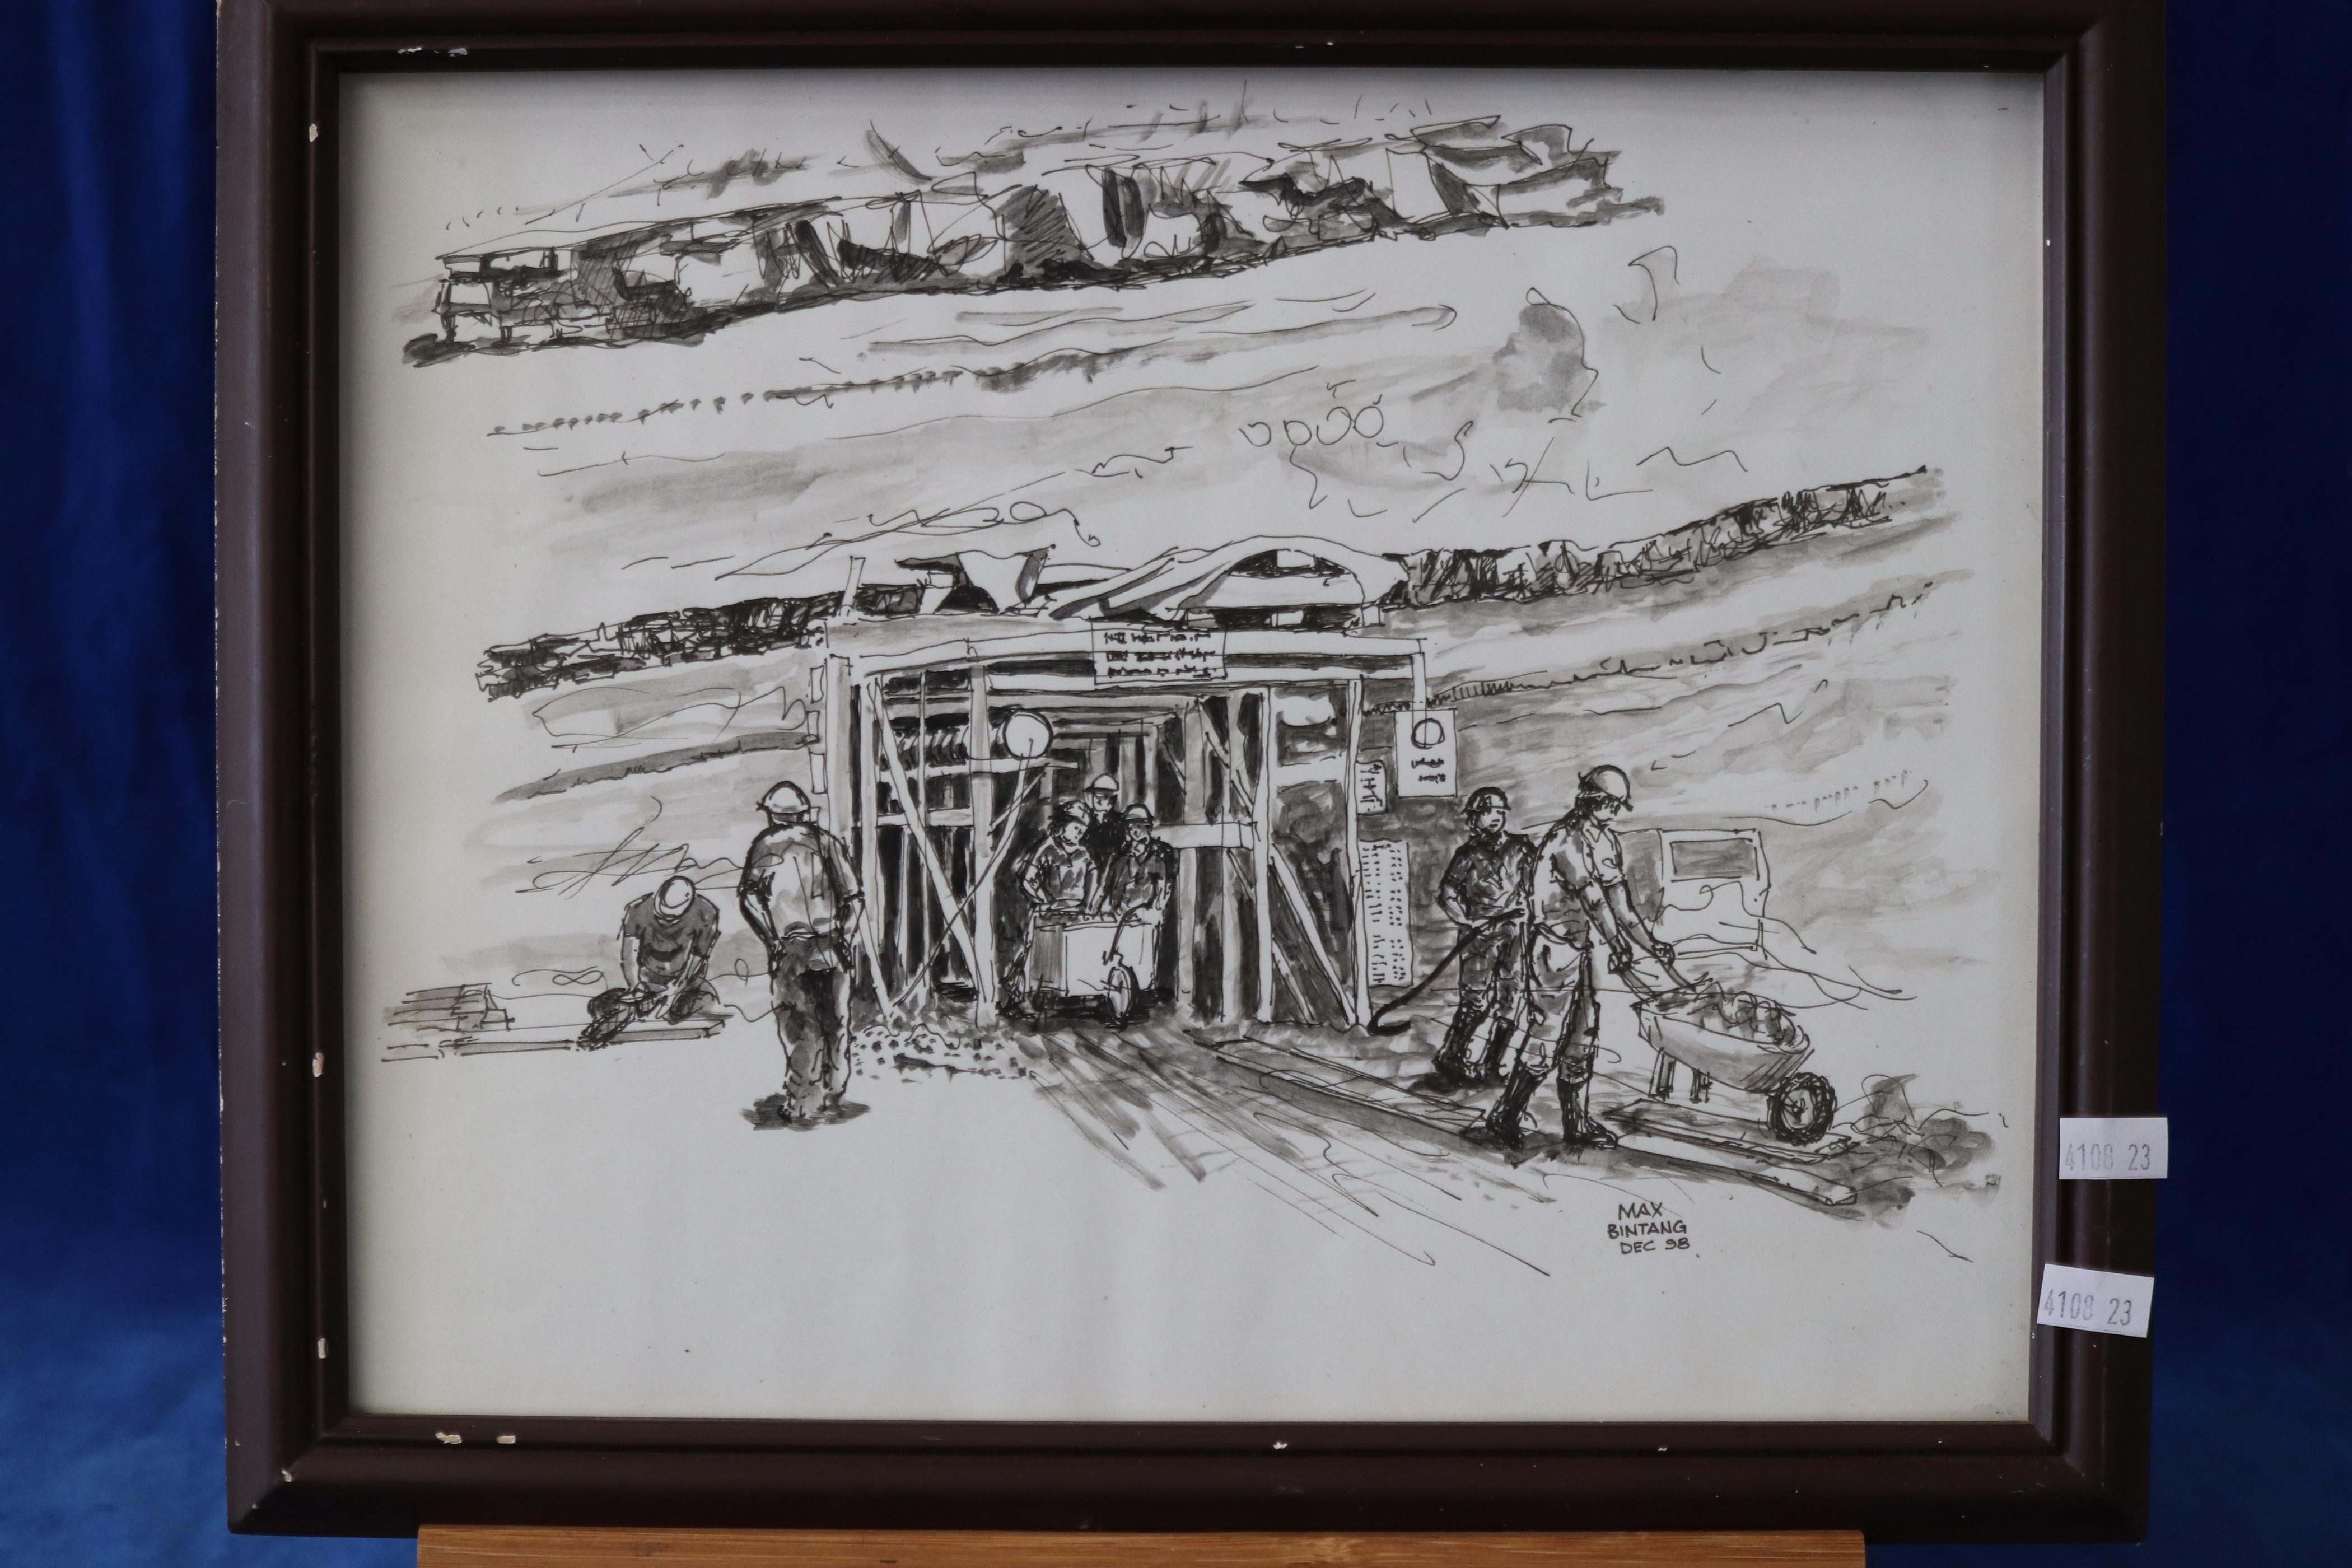 ORIGINAL SKETCH - AUSTRALIAN COAL MINERS IN AN INDONESIAN MINE SIGNED MAX BINTANG